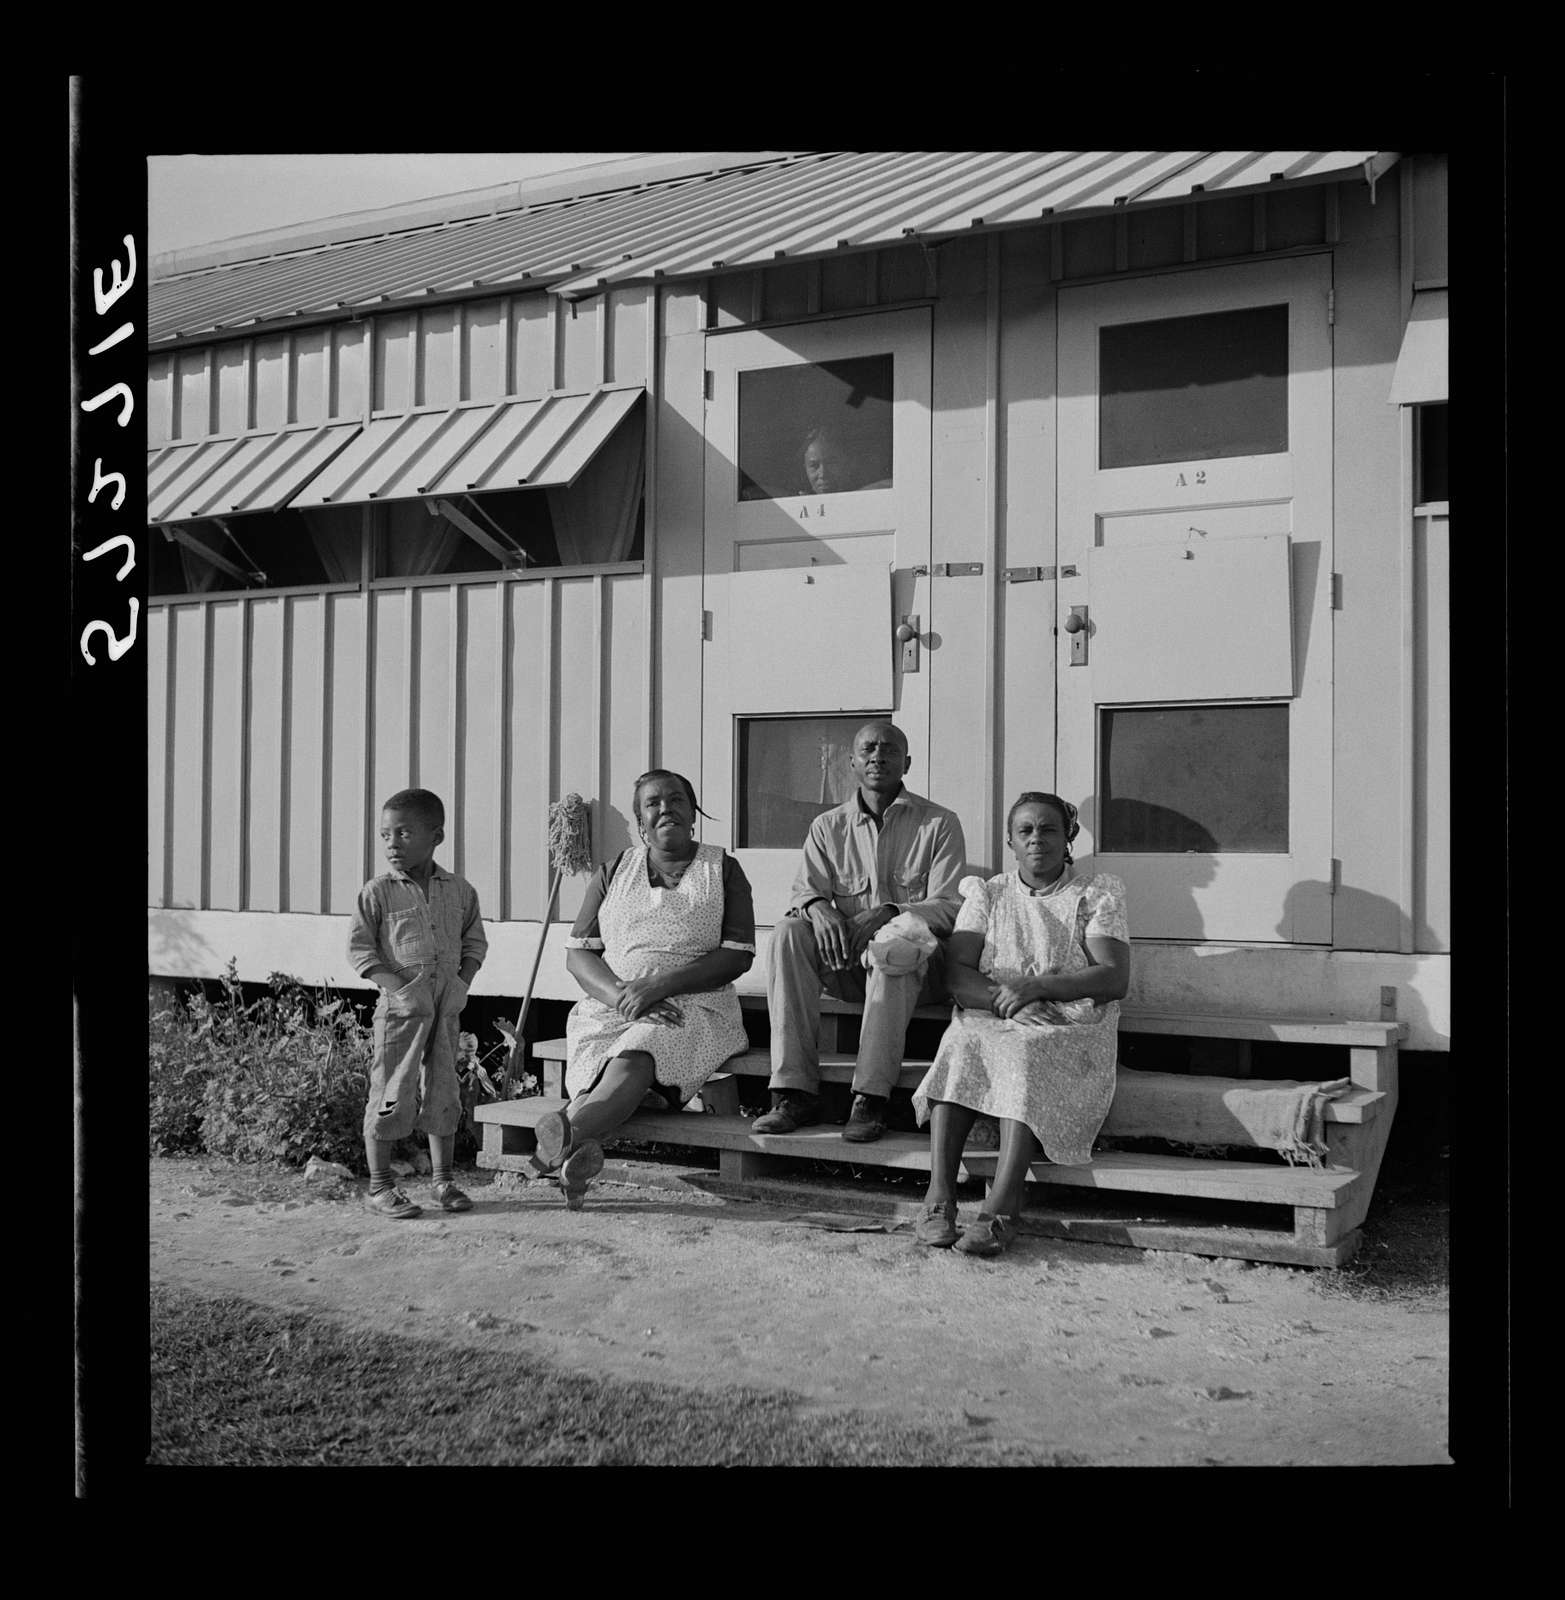 Migratory laborers sitting in front of their metal shelter at Okeechobee migratory labor camp. Belle Glade, Florida